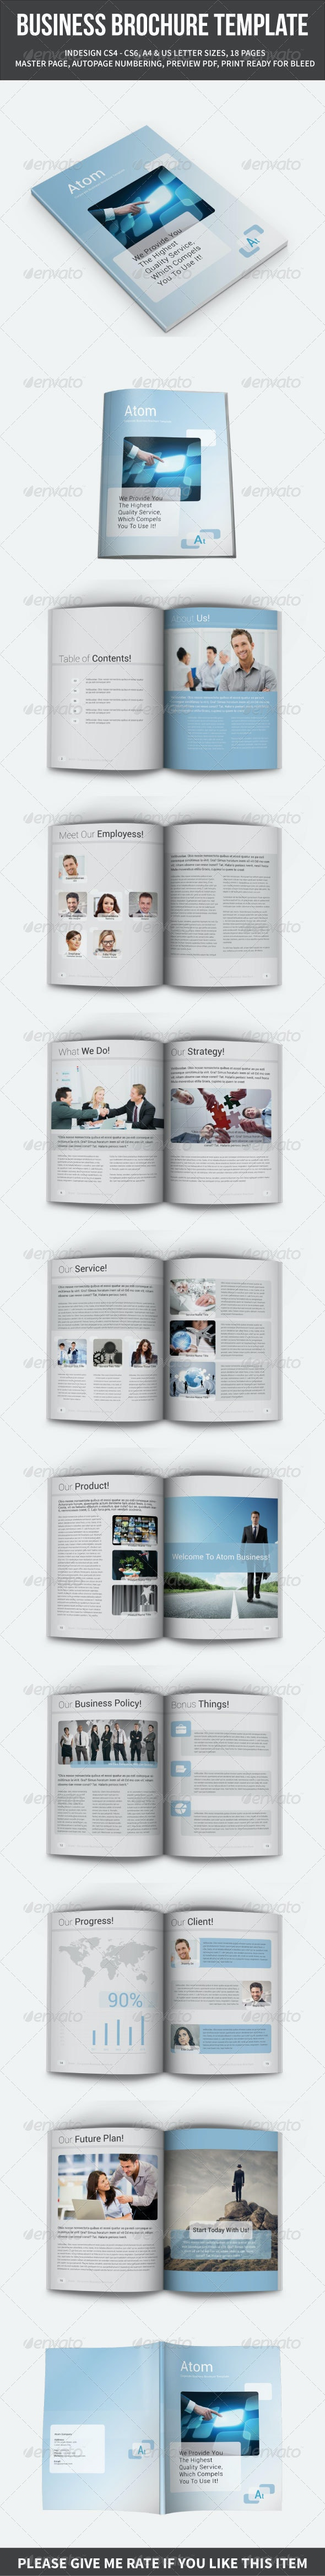 Business Brochure Template A4 and Letter 18 Pages - Corporate Brochures